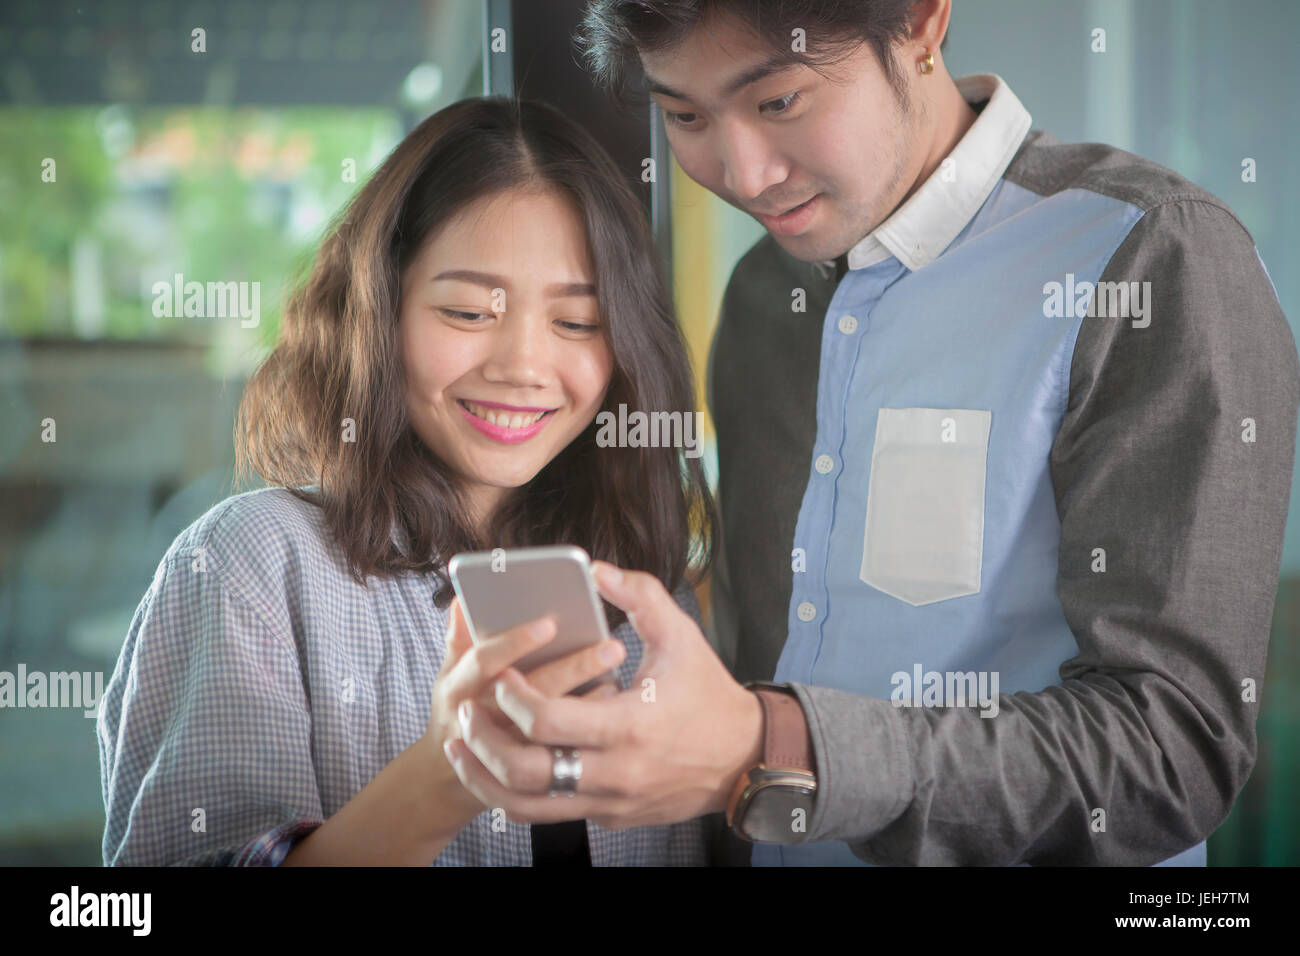 asian younger man and woman looking to smart phone screen toothy smiling face happiness emotion - Stock Image